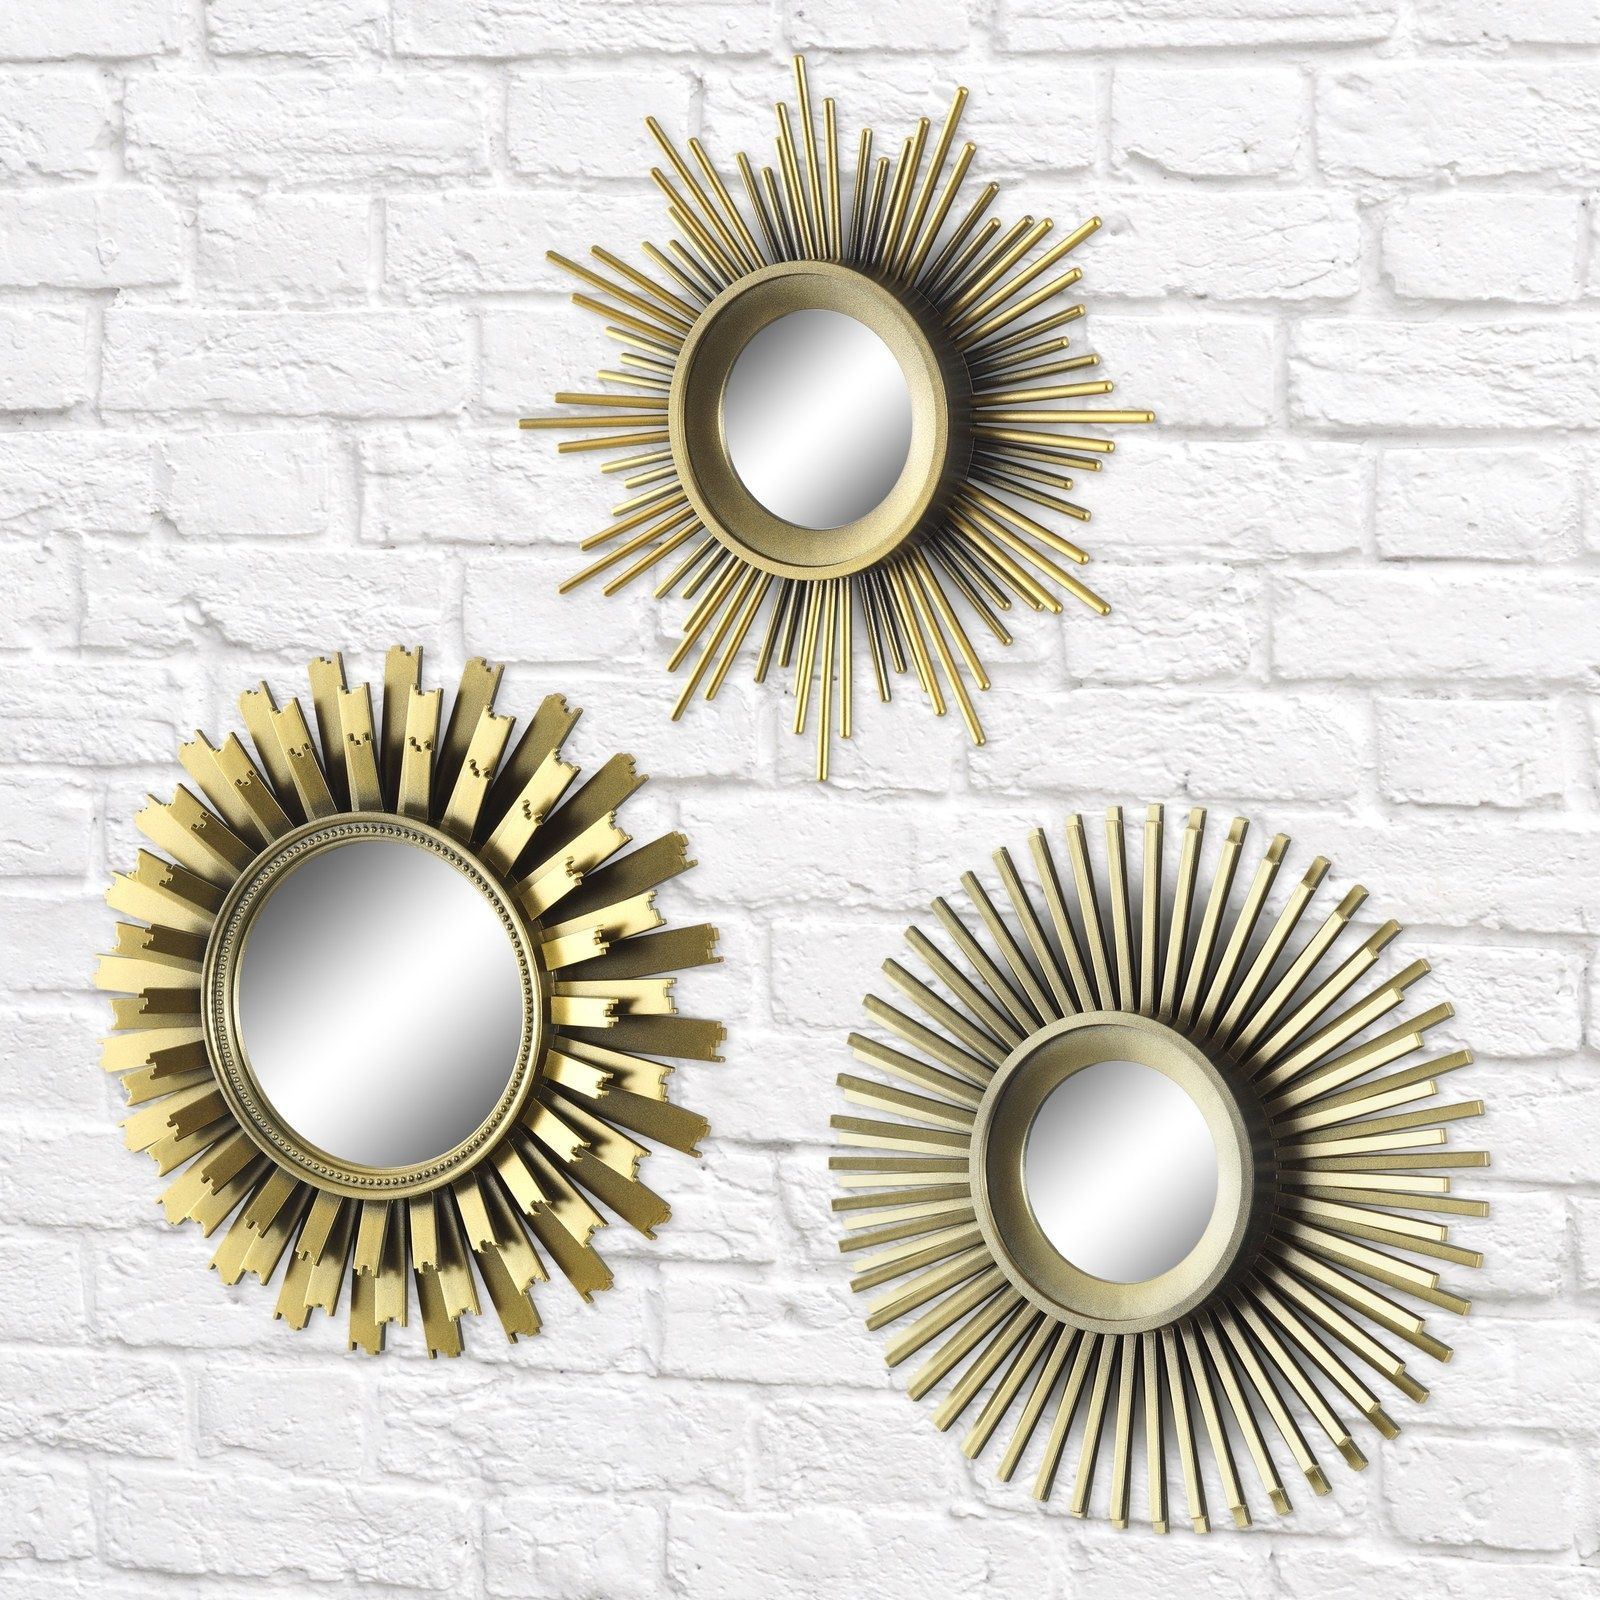 A set of sunburst mirrors to warm your icy heart and empty ...